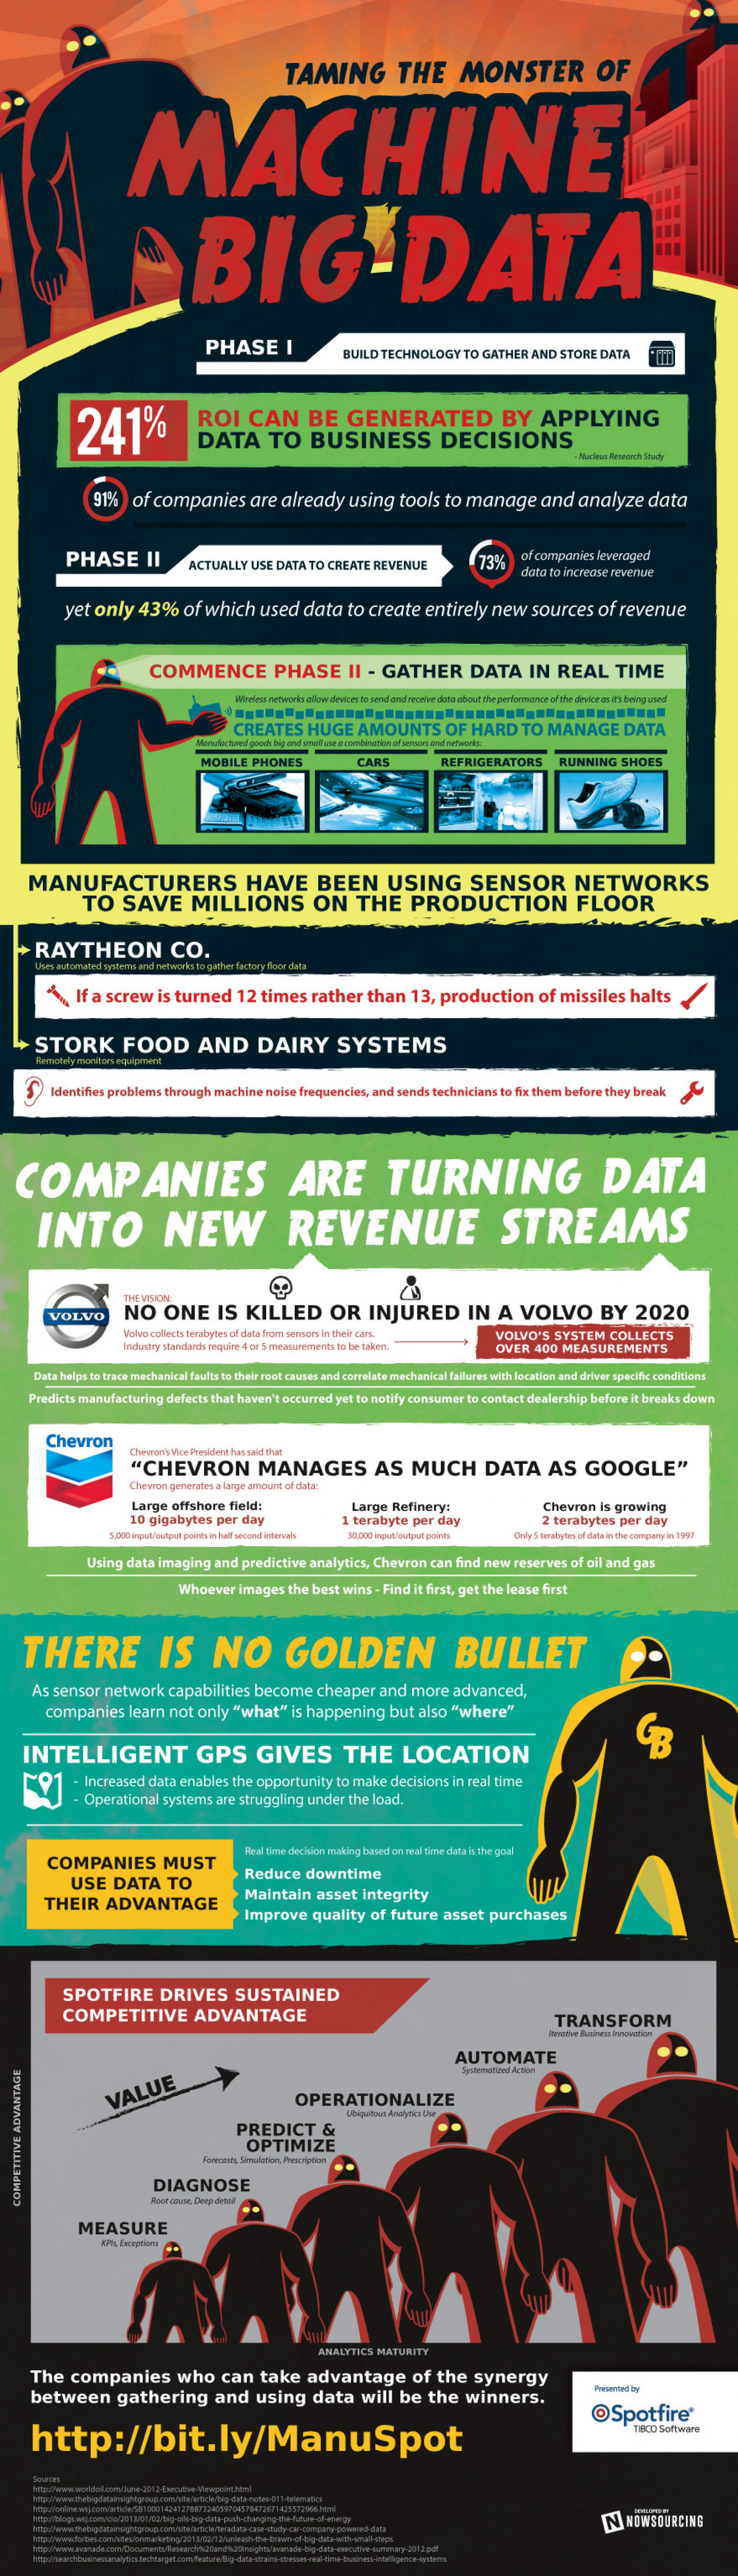 Taming the Monster of Machine Big Data Infographic